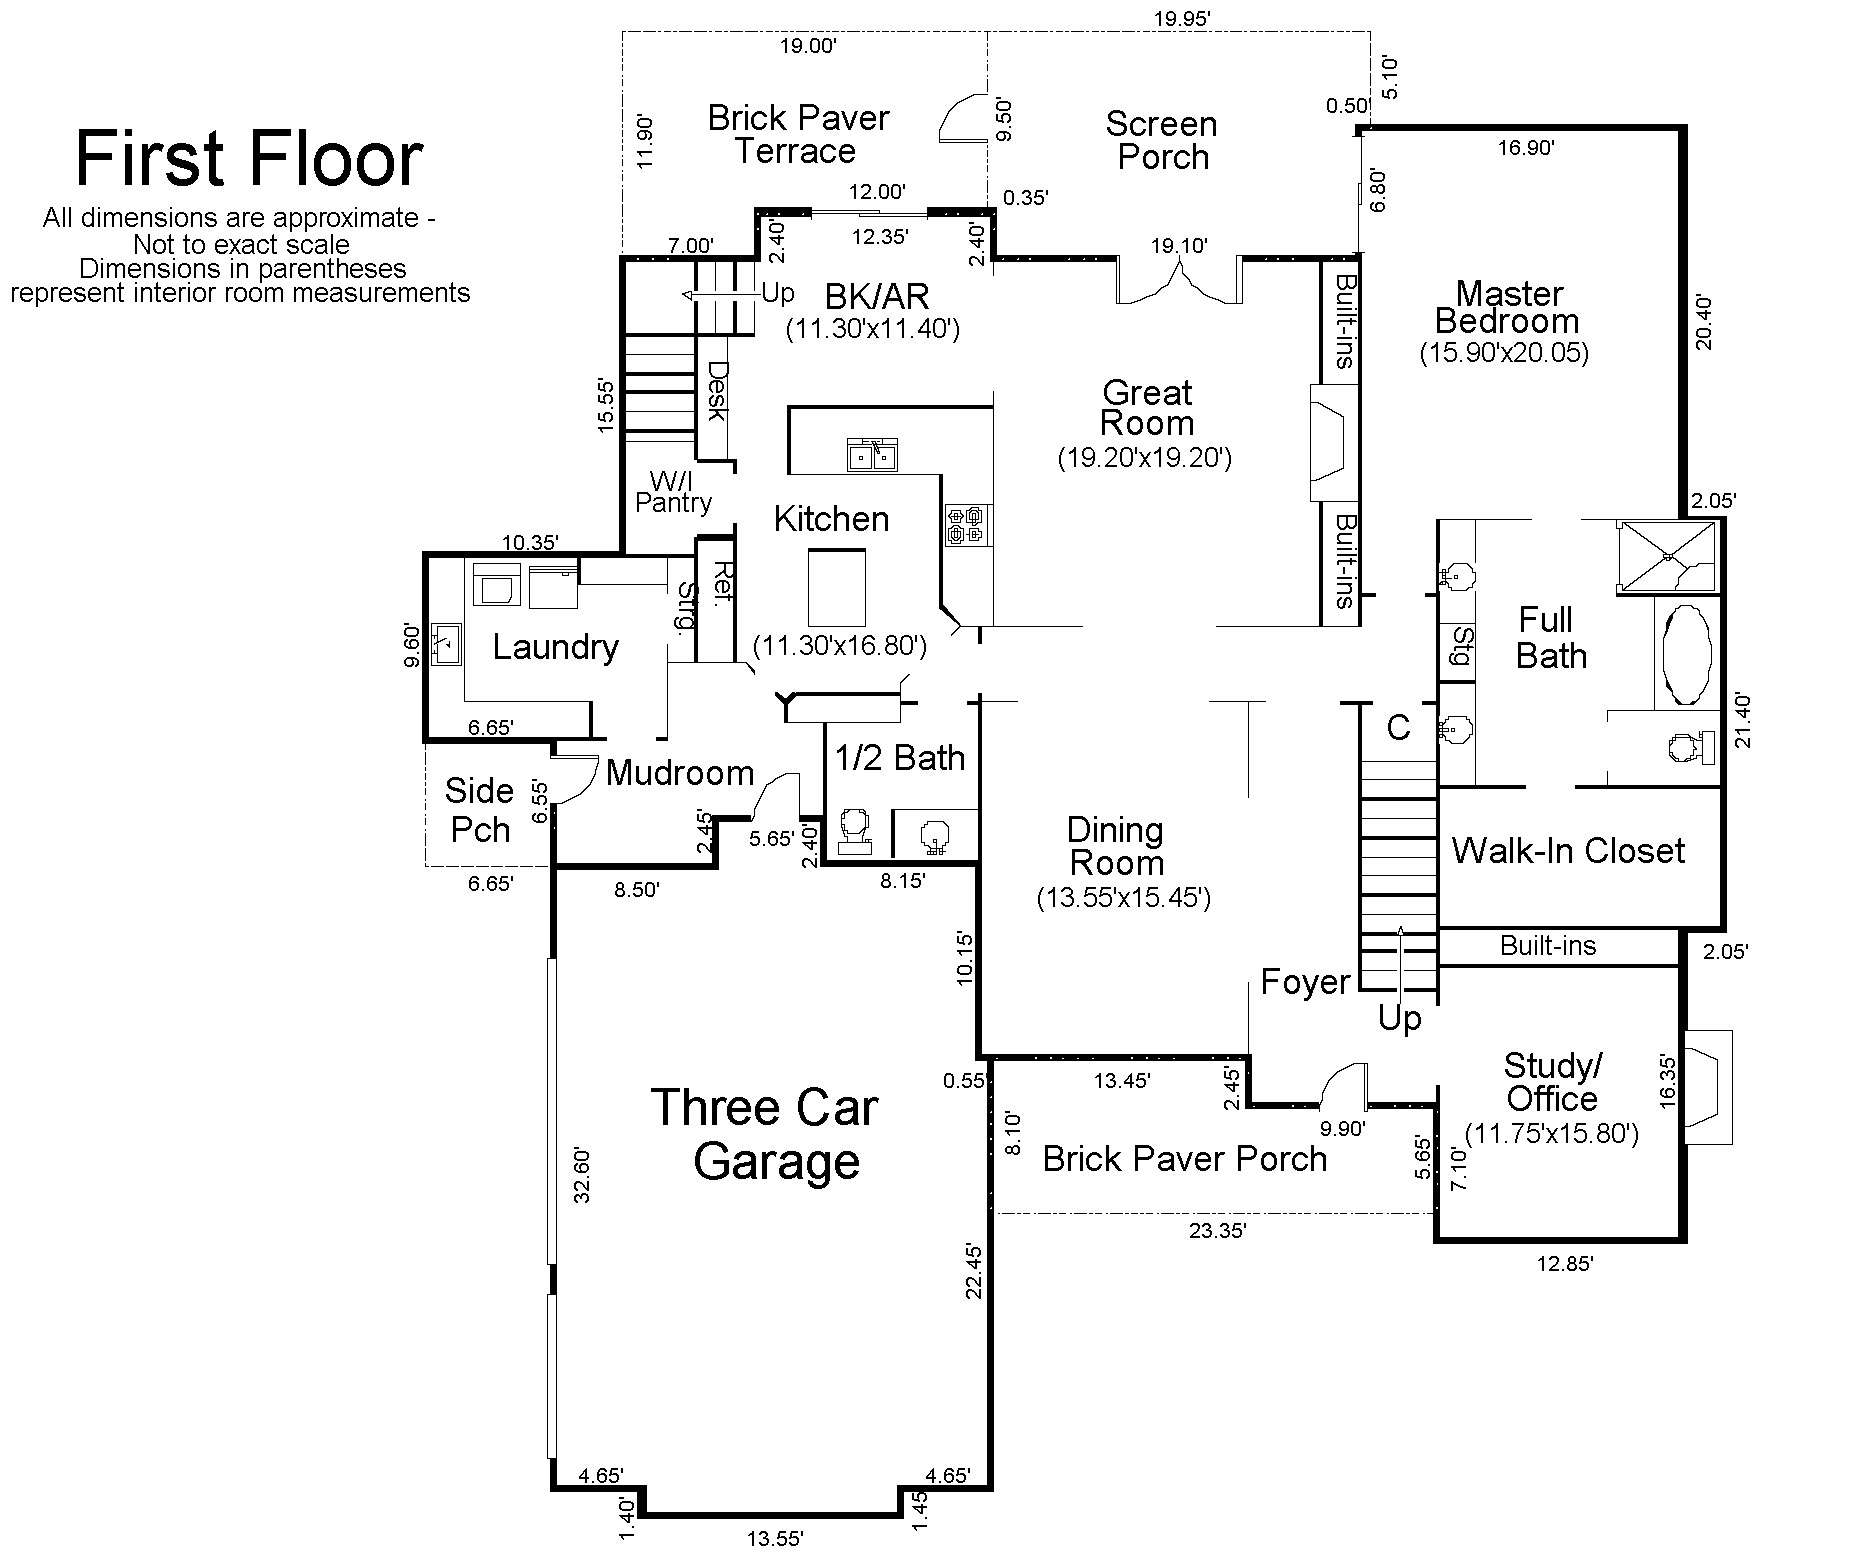 Click here to see a larger picture of this sample floorplan